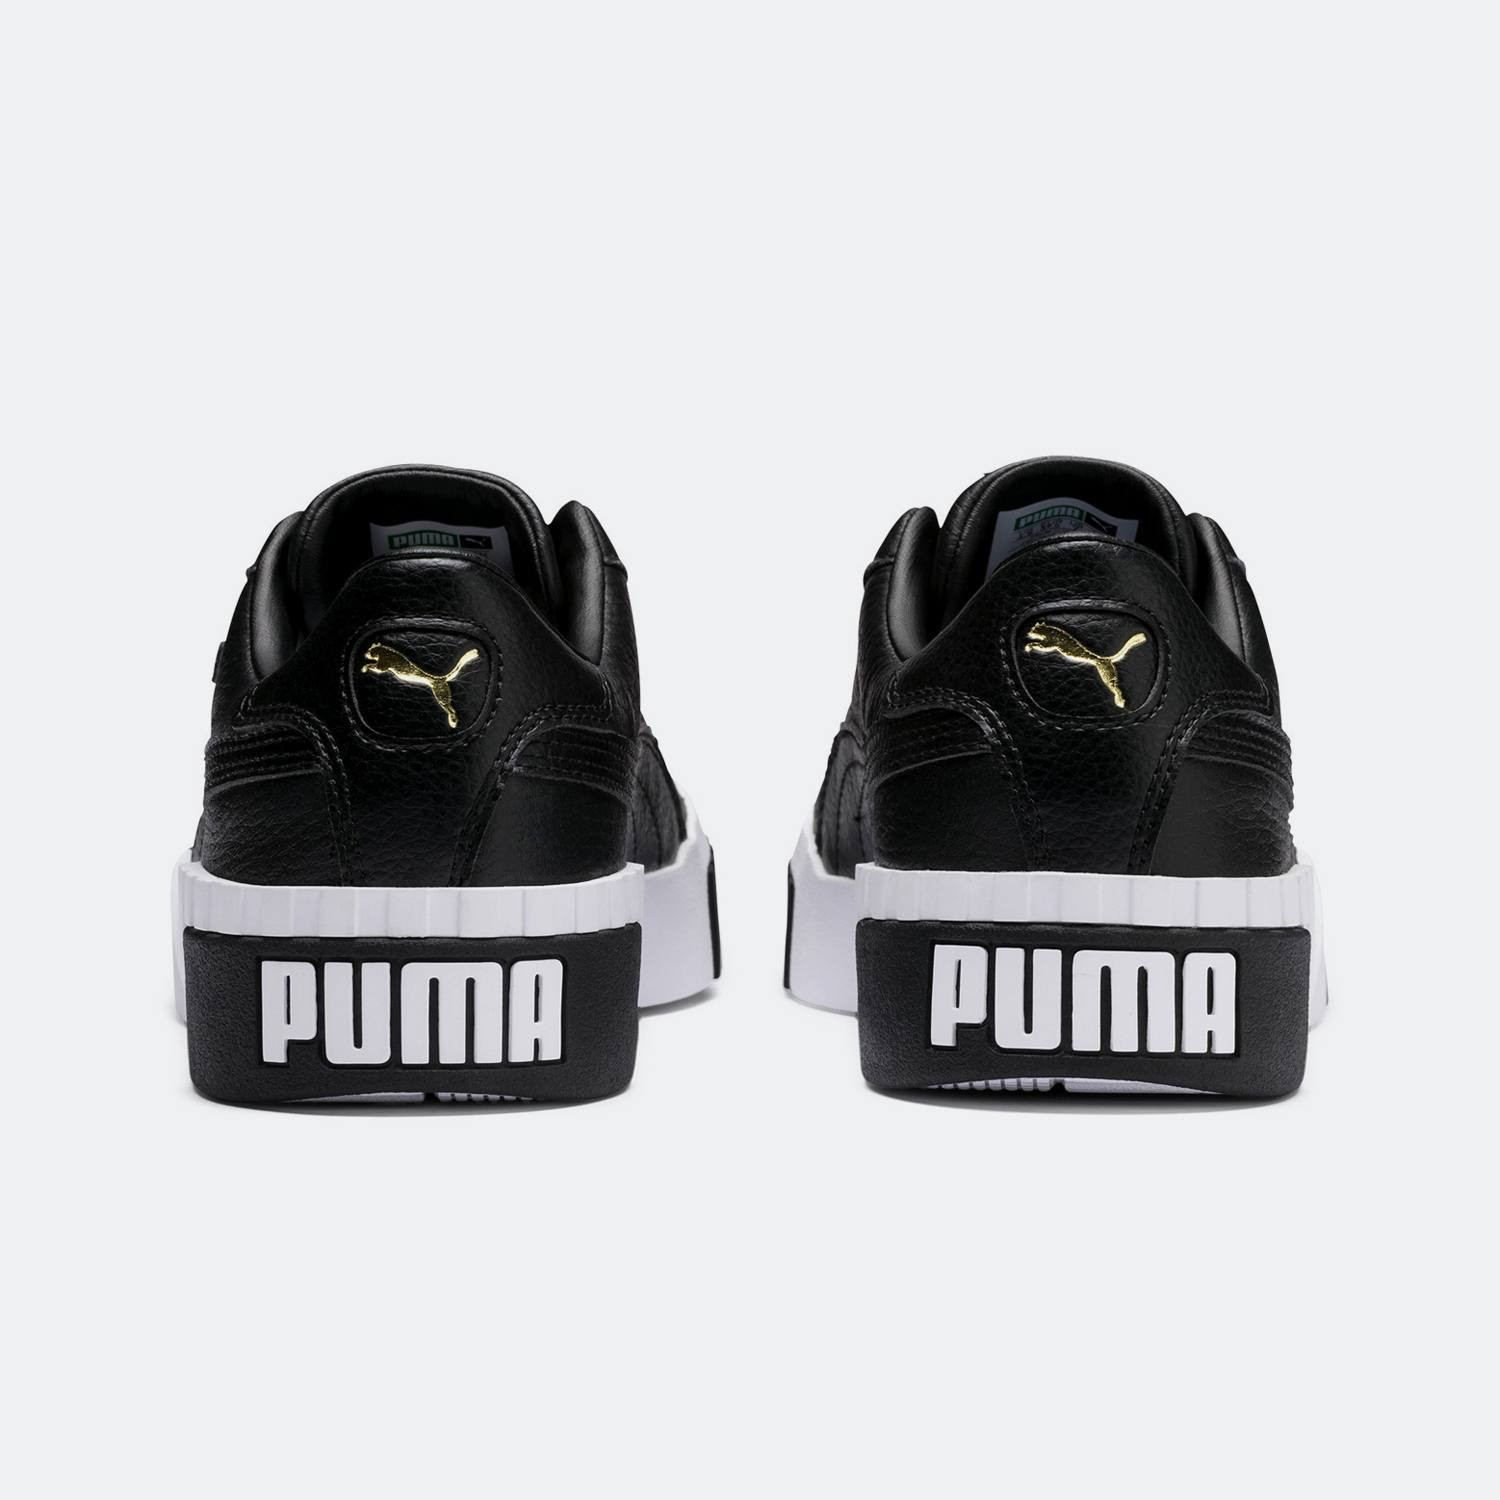 Puma Cali Women's Shoes